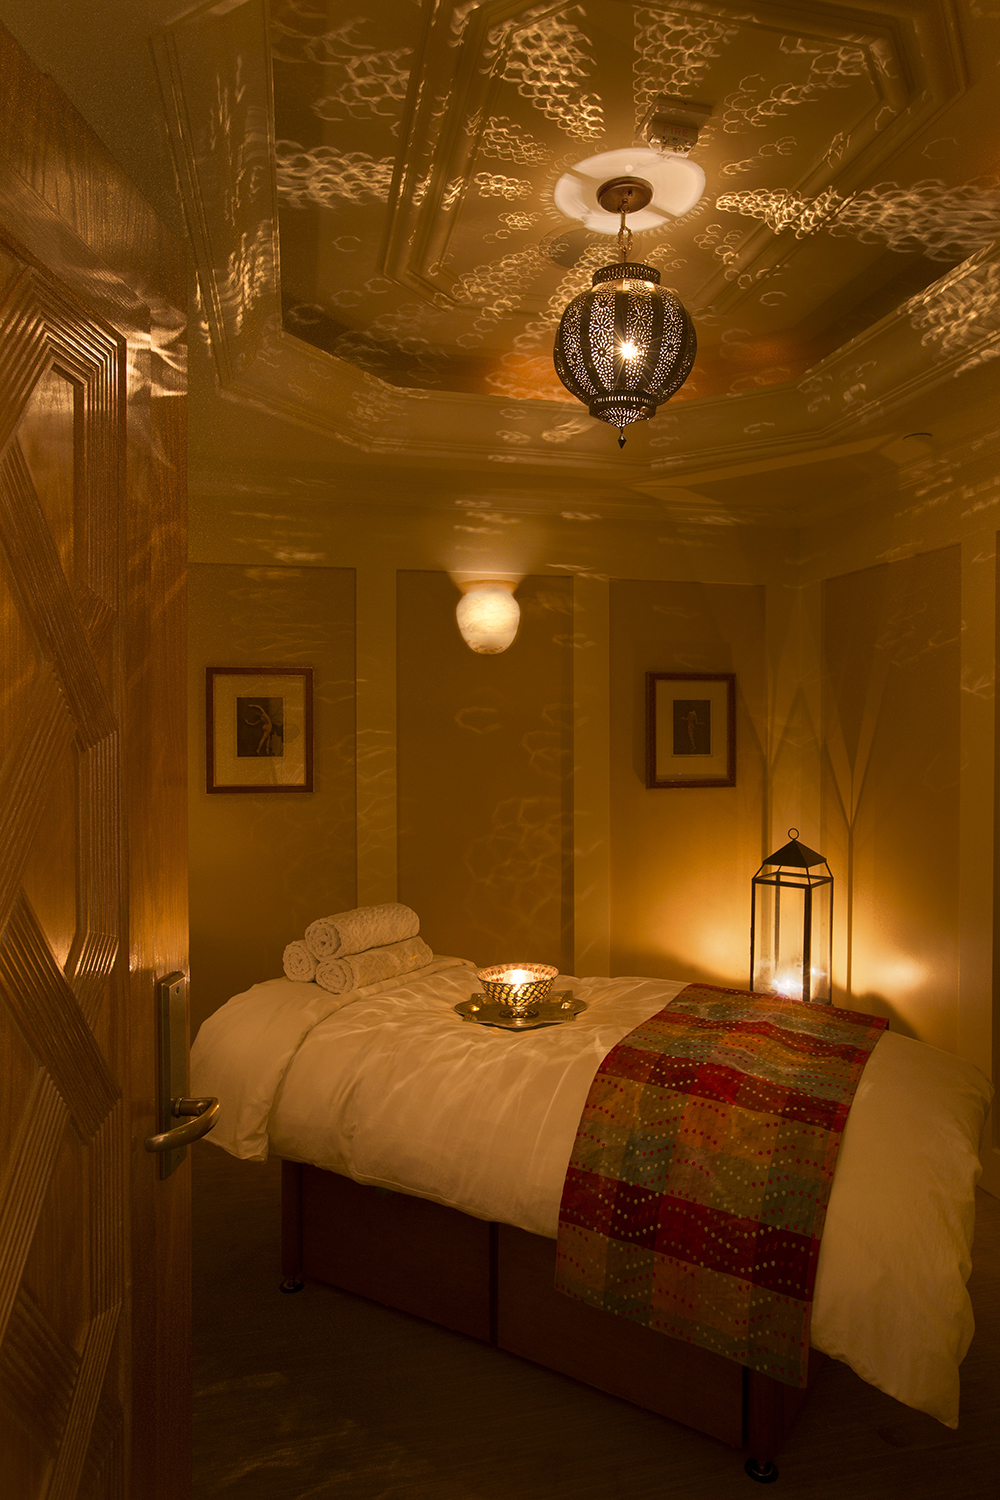 Treatments include the Beverly Body Bliss Massage, which incorporates a soothing hot stone massage and a dusting of 24k gold.